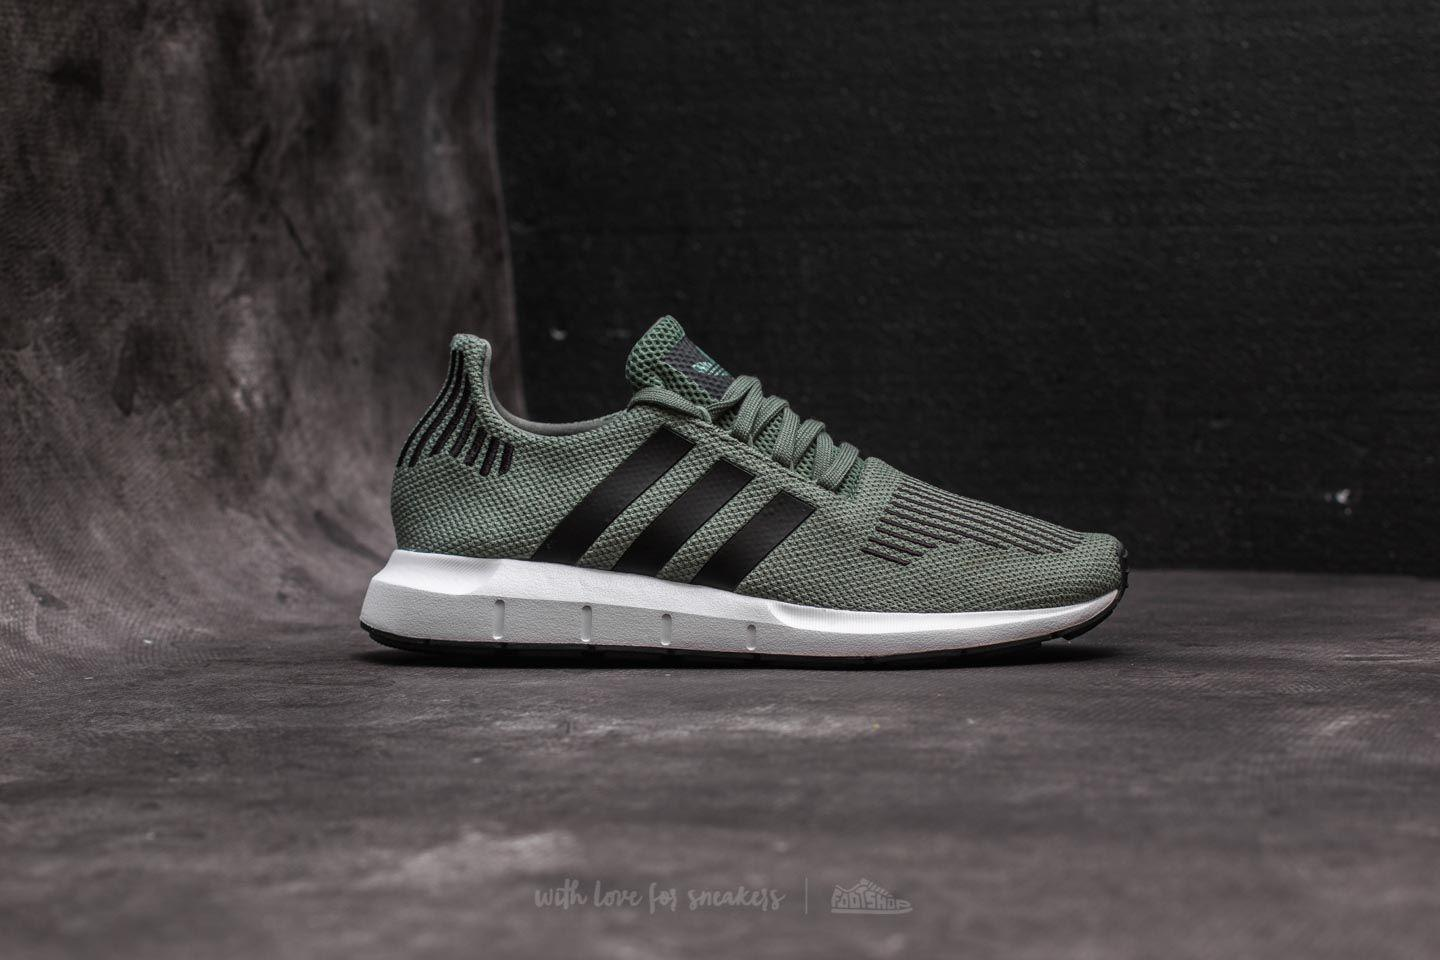 2b8943355e019 ... shoes green  Lyst - Adidas Originals Adidas Swift Run J Trace Green  Core Black ... adidas Men ...